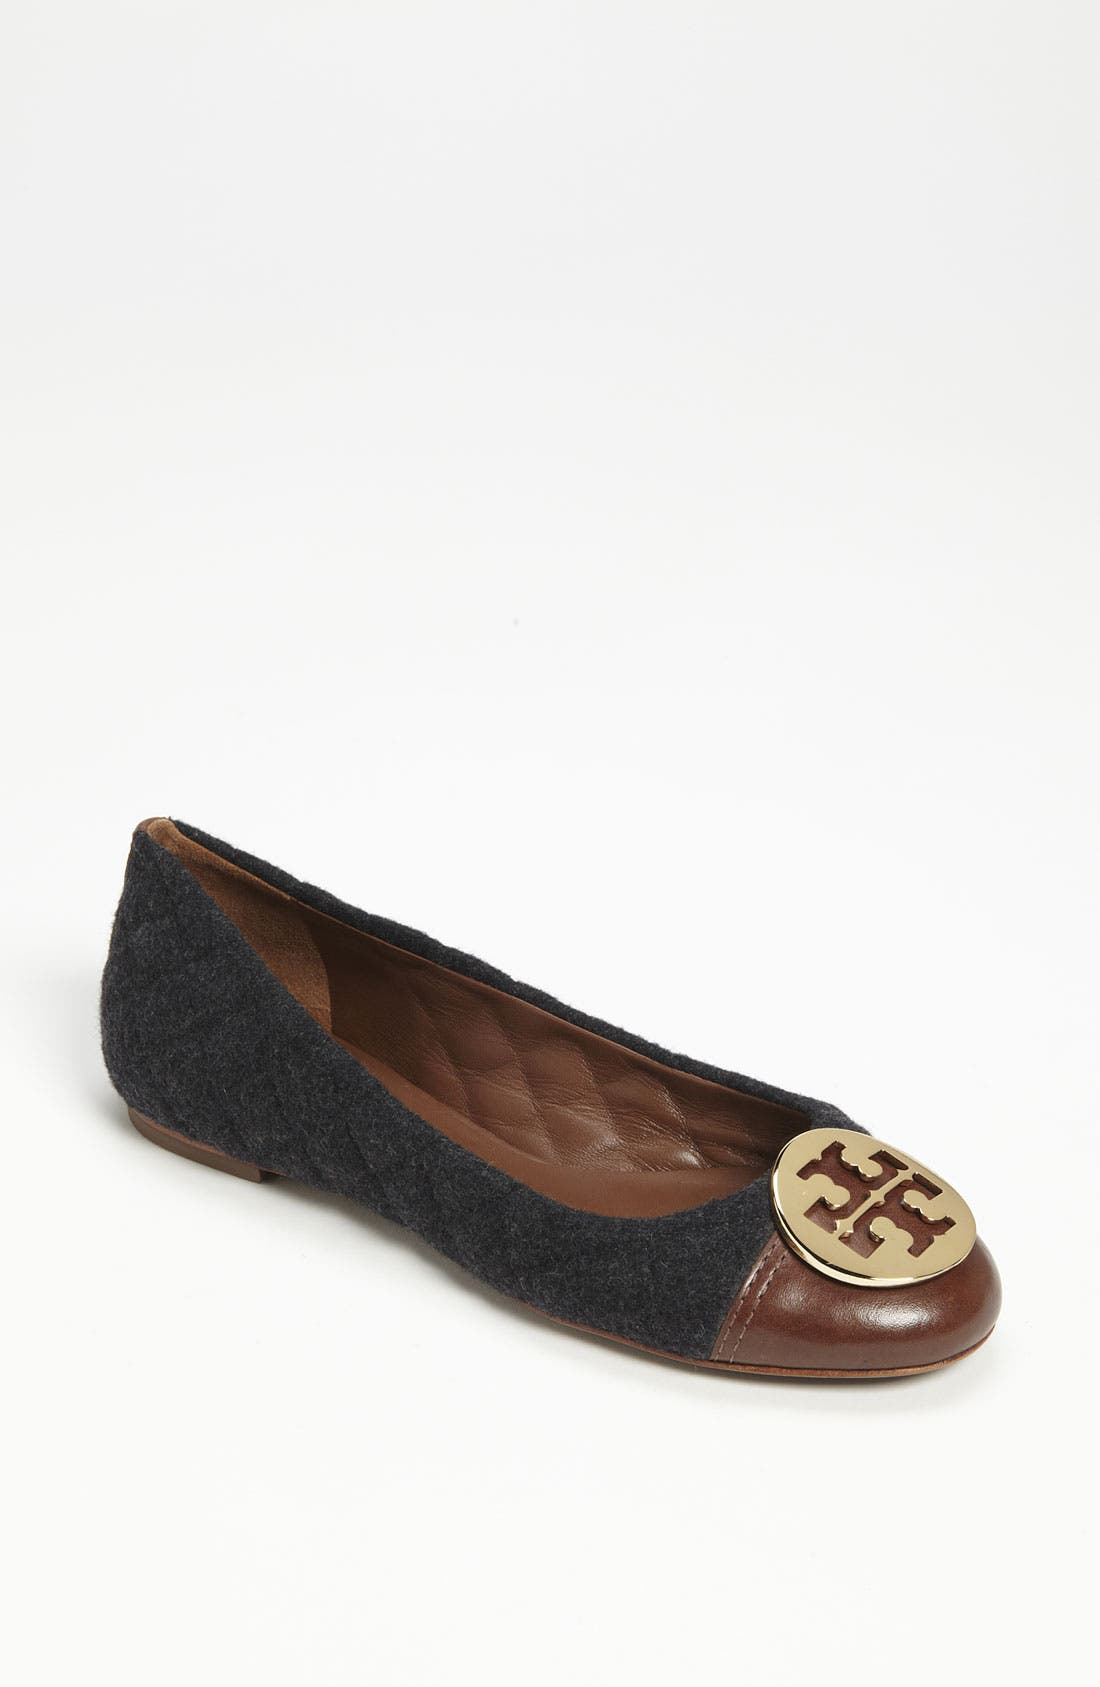 Alternate Image 1 Selected - Tory Burch 'Parker' Flat